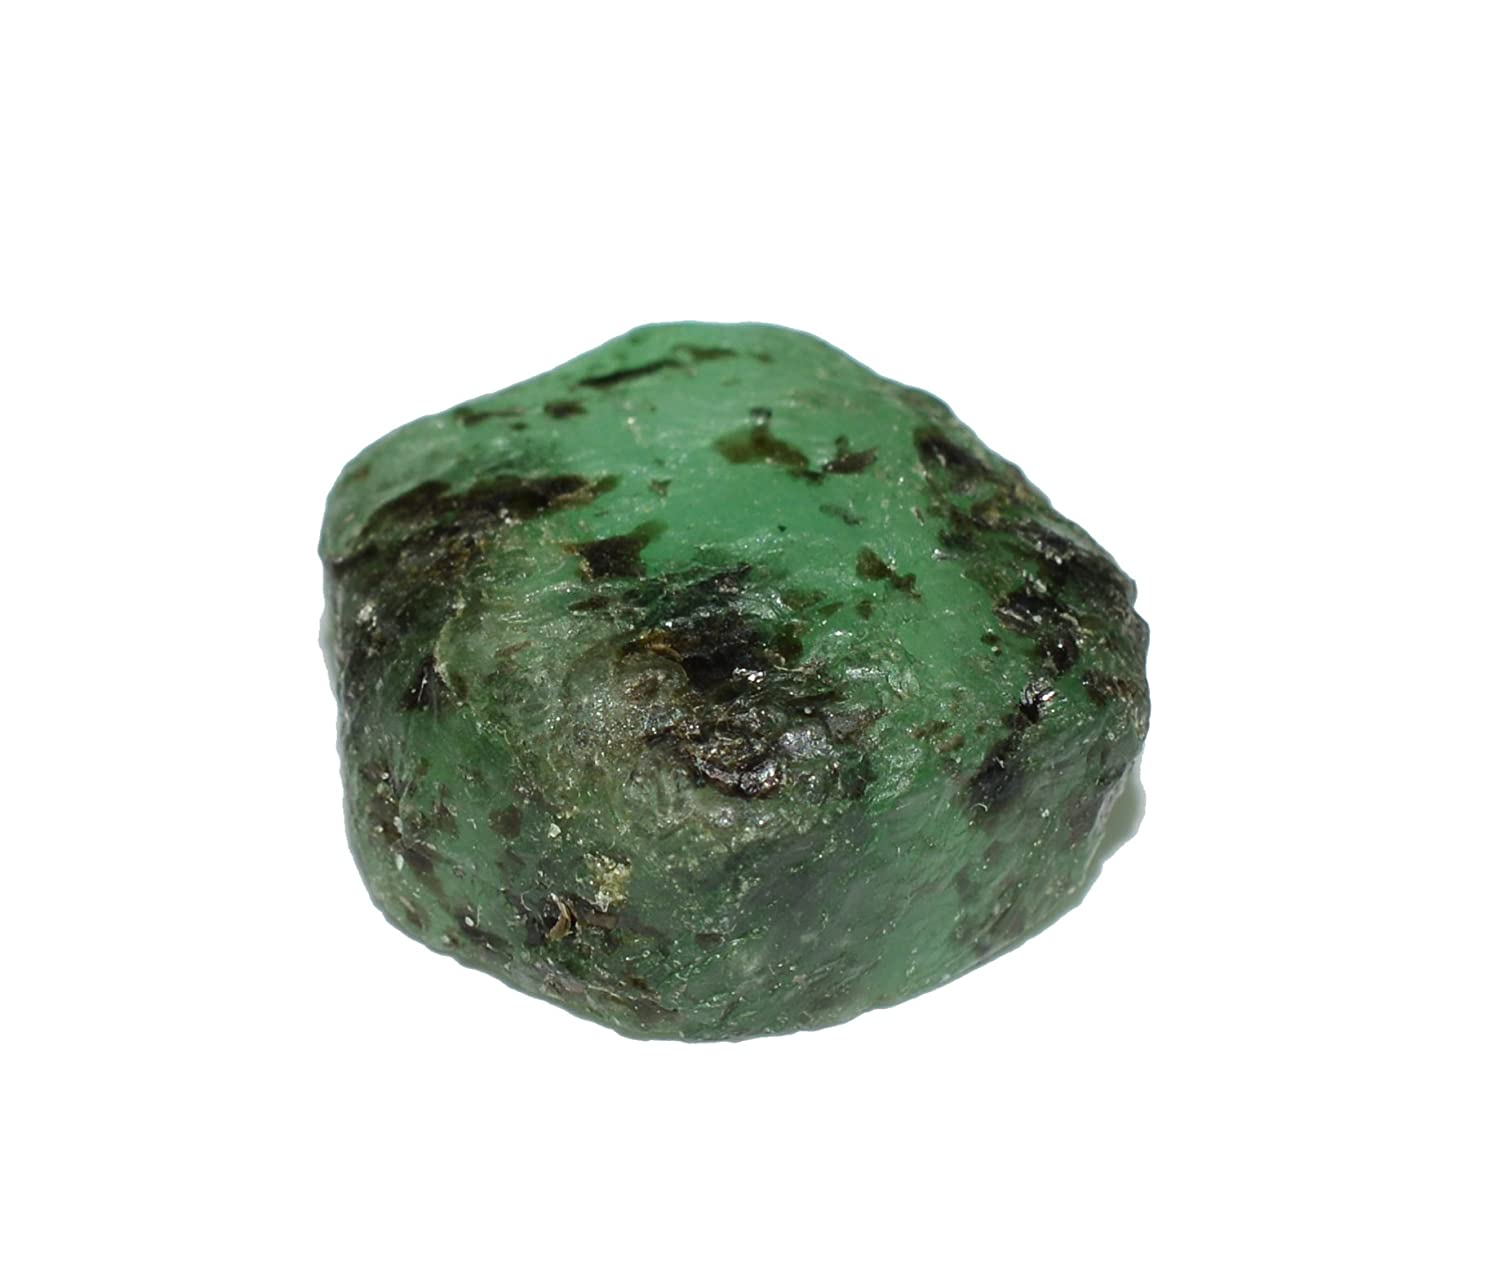 Emerald rough gemstone crystal 7.61 carat 1448